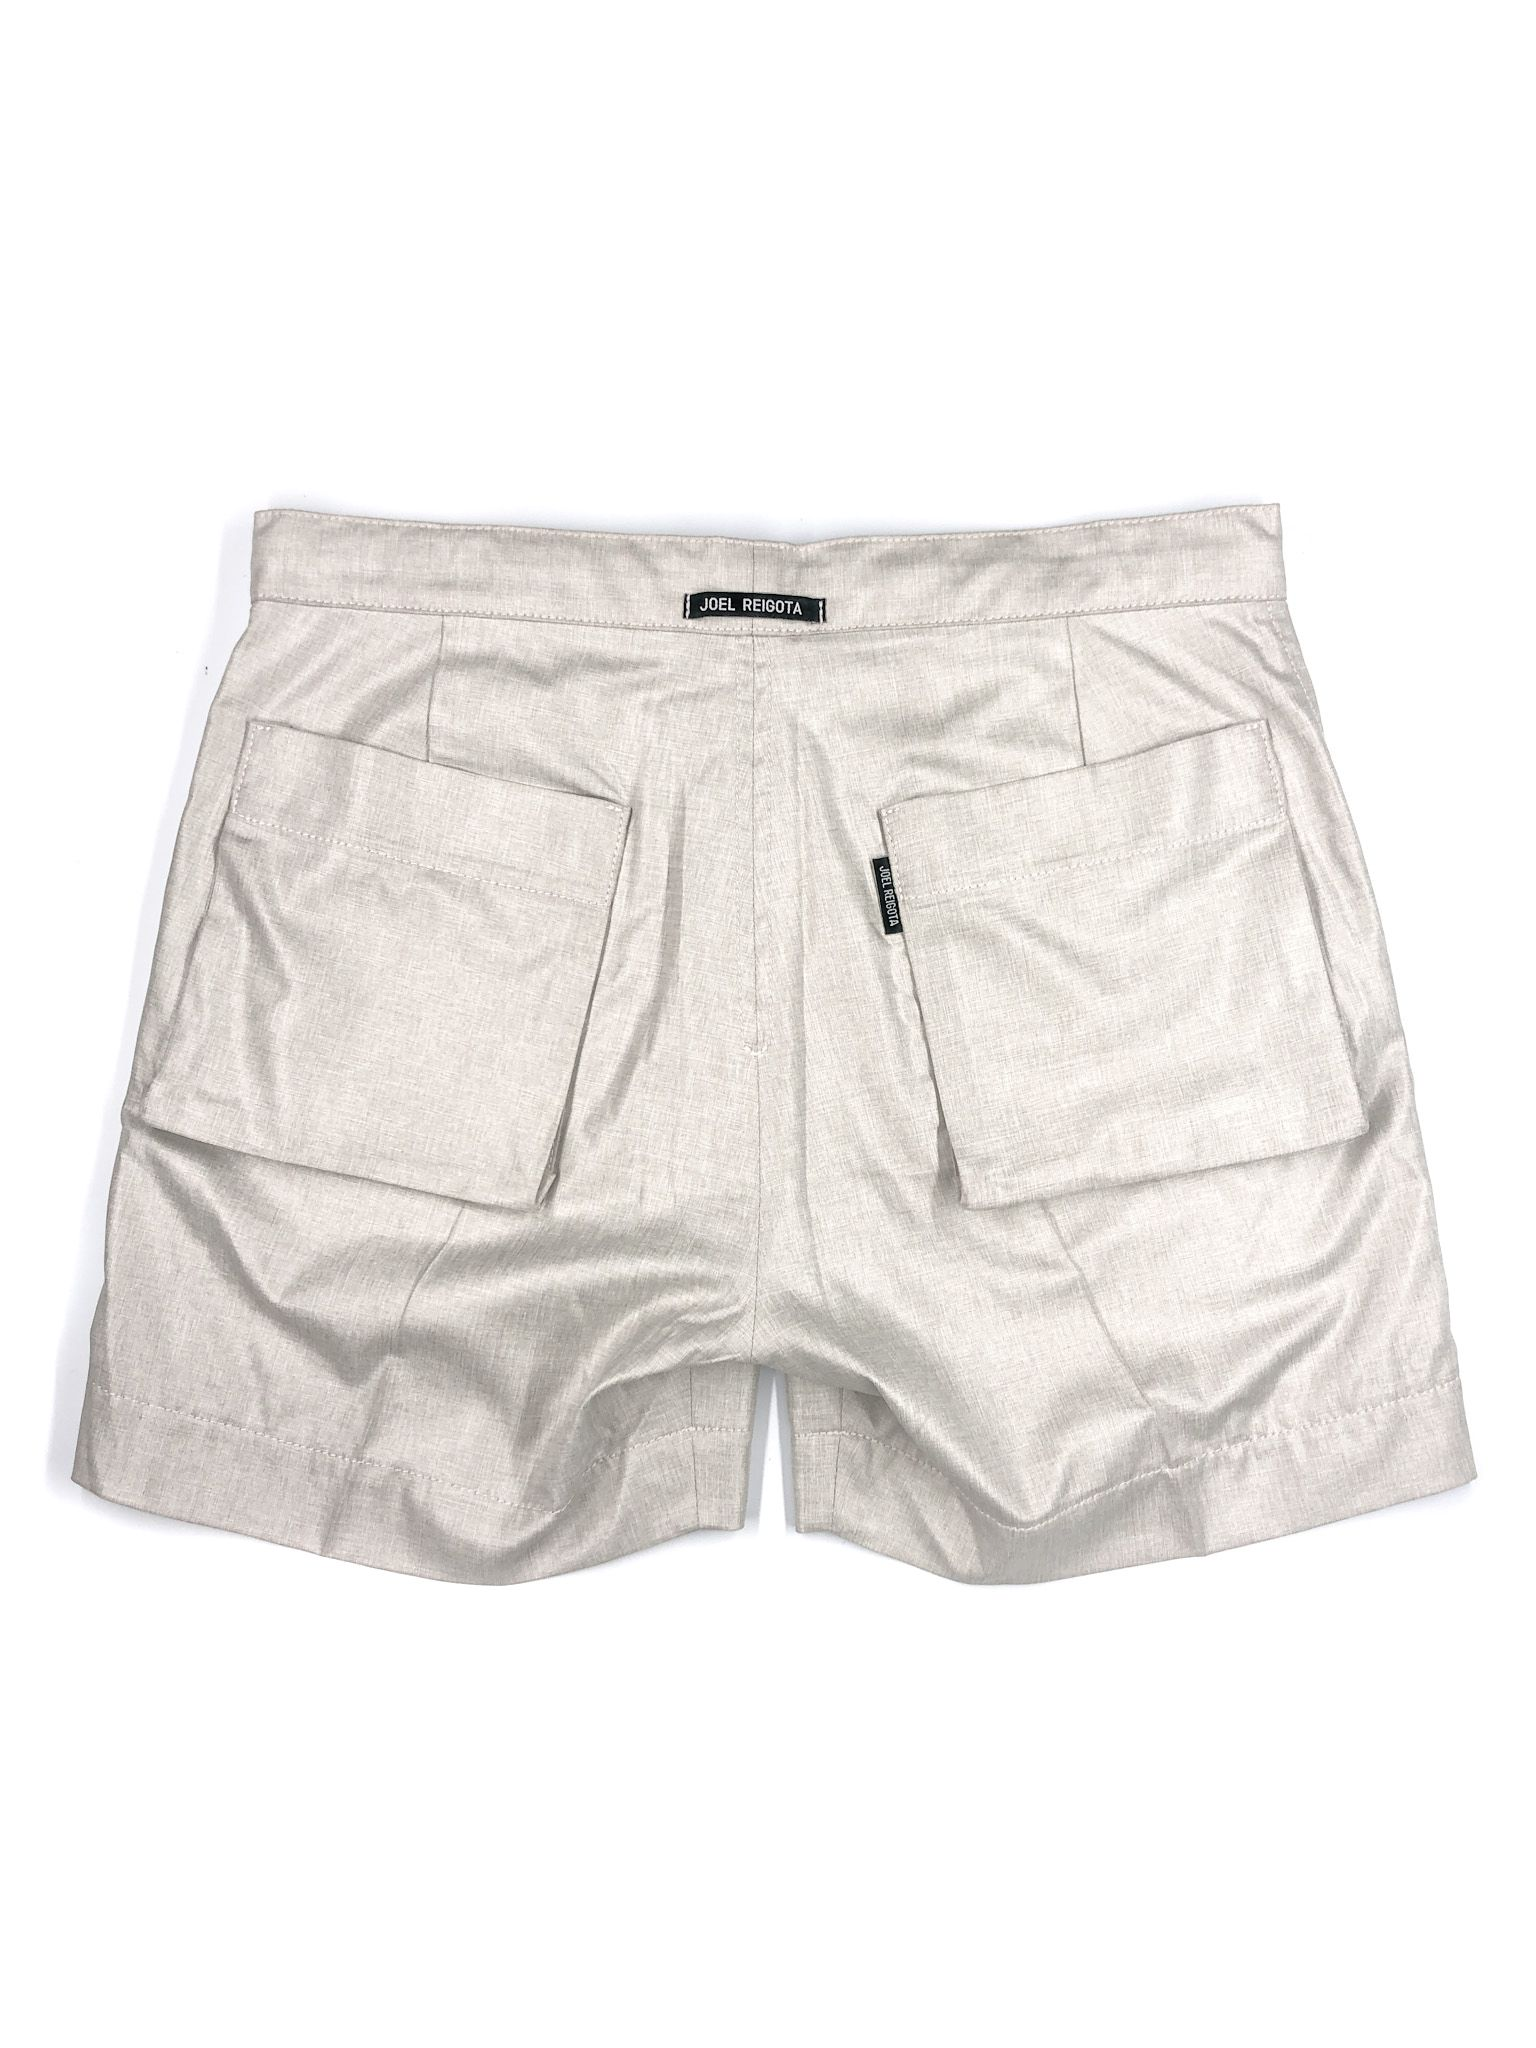 Powder Drawstring Shorts